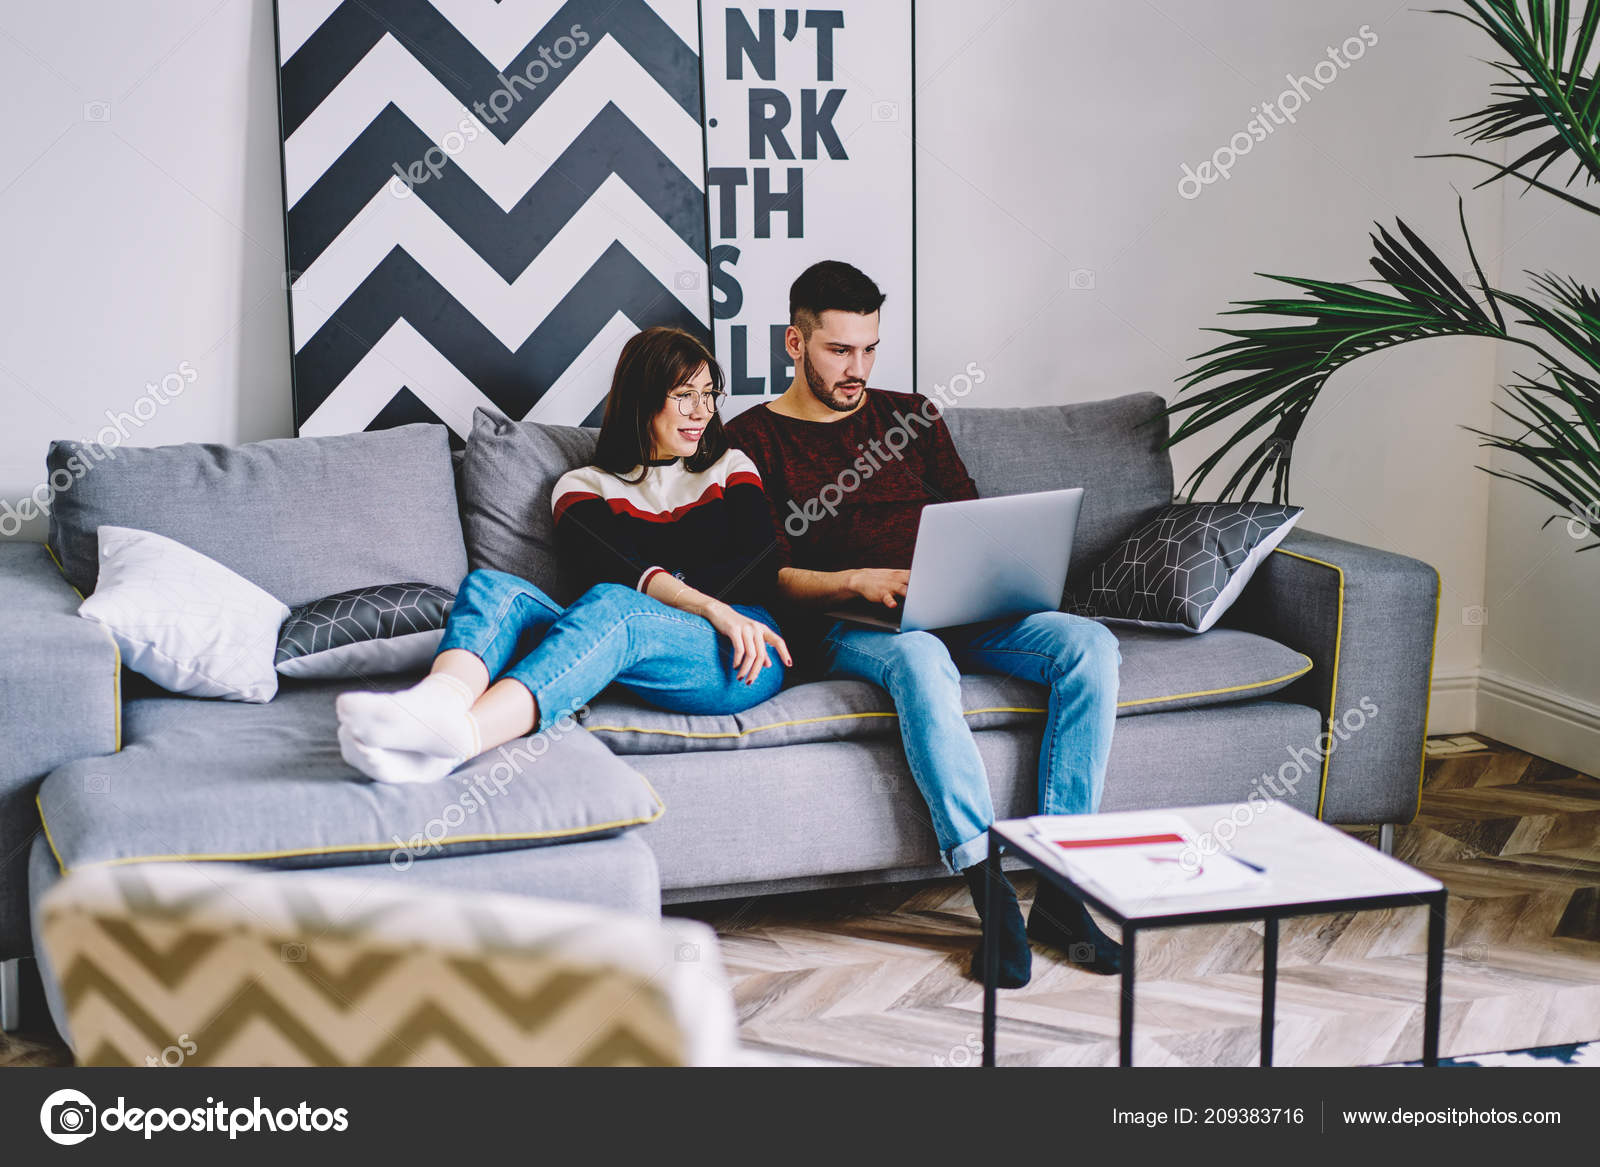 Young Man Booking Tickets Website Modern Laptop Sitting Comfortable Couch Stock Photo C Gaudilab 209383716